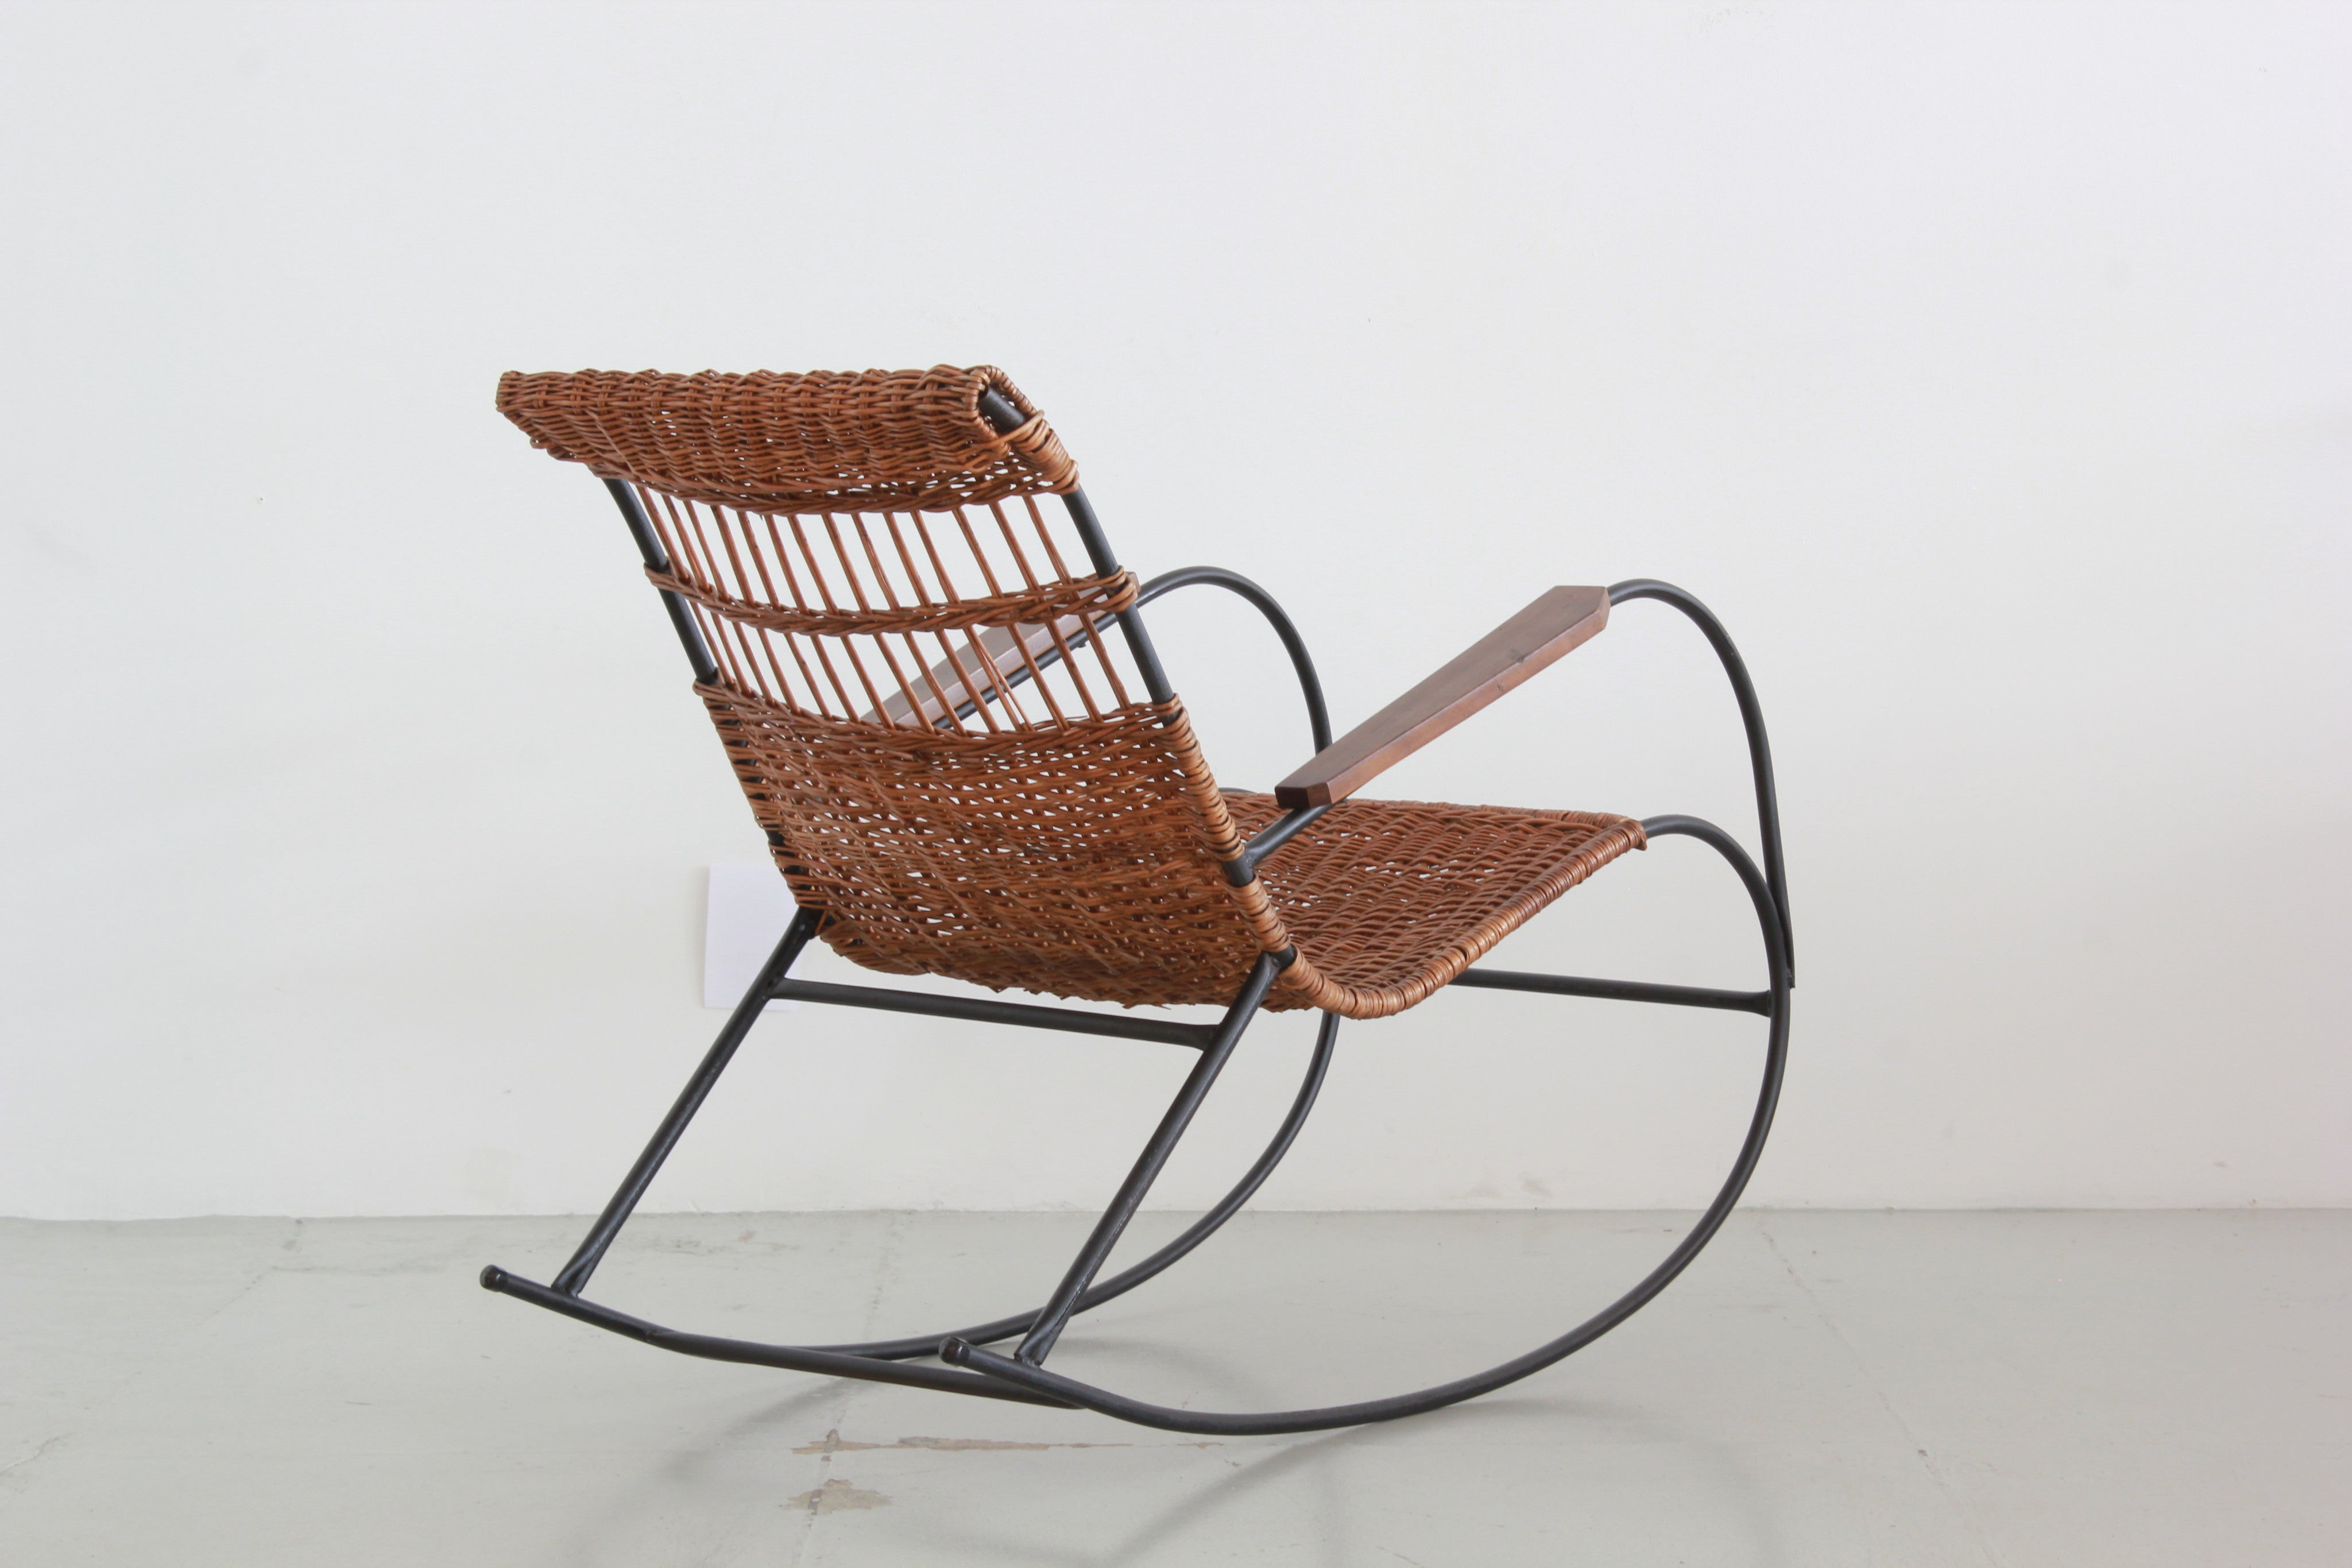 ... Pair of German Wicker Rocking Chairs ... & Pair of German Wicker Rocking Chairs - Orange Furniture Los Angeles